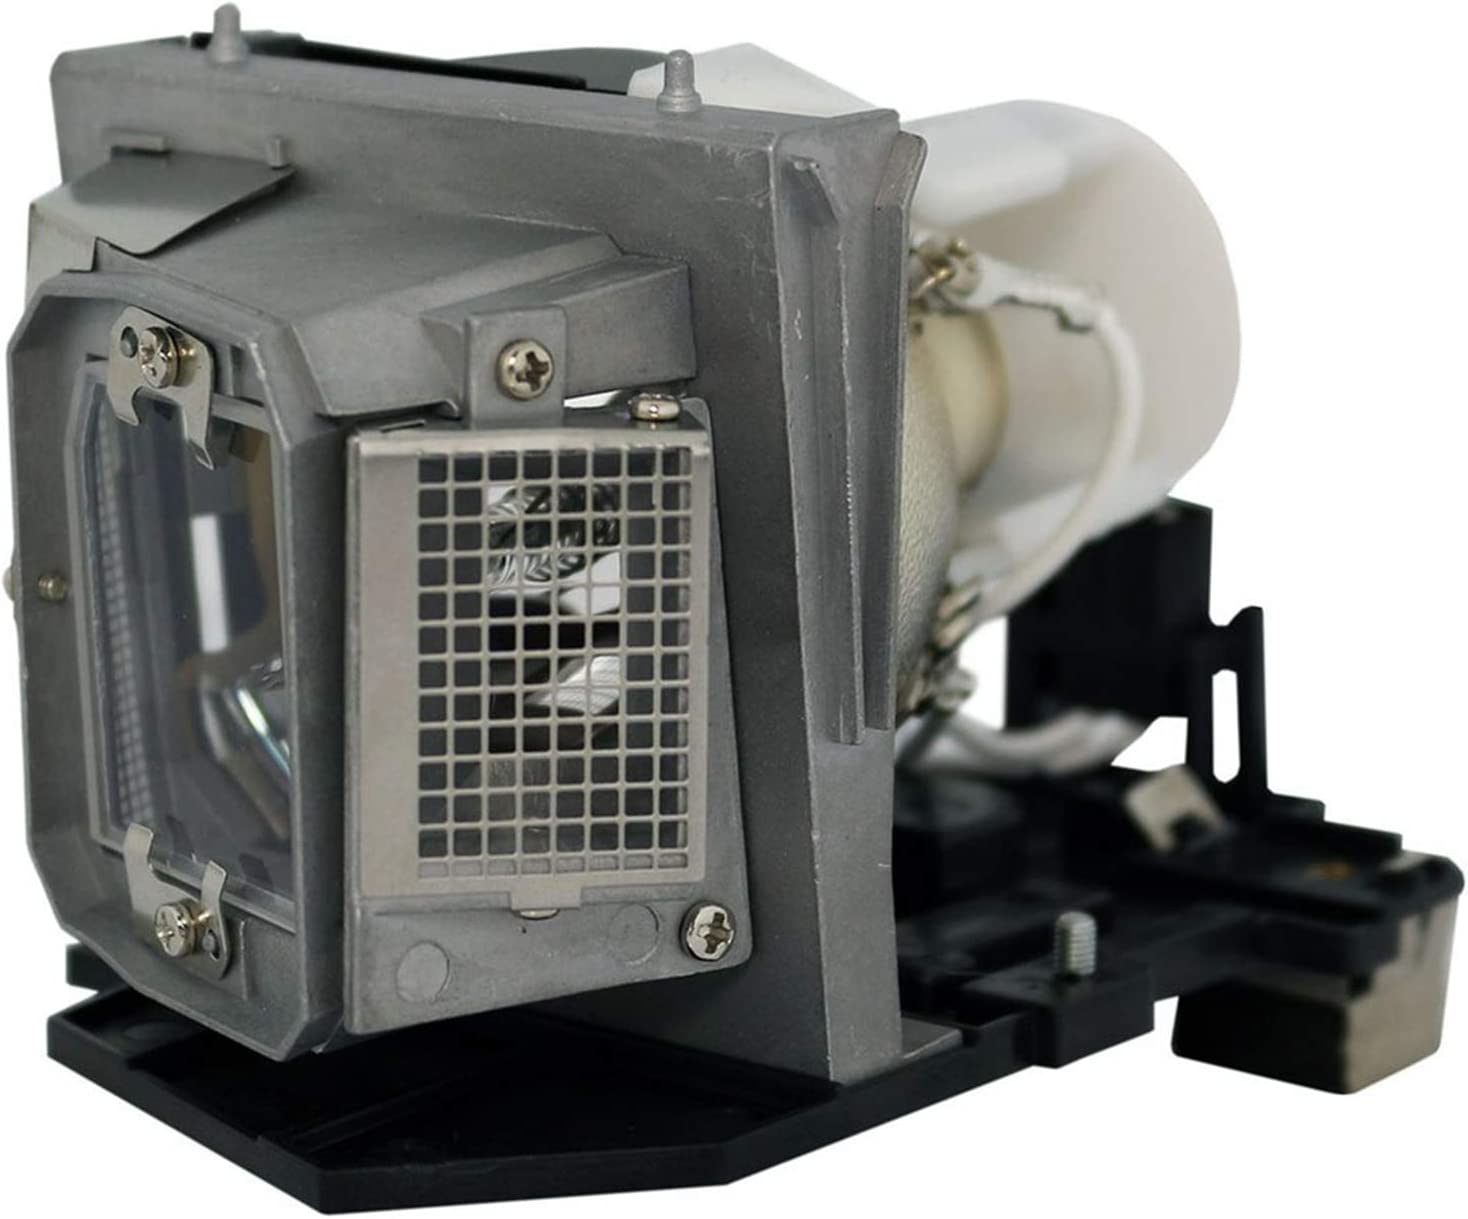 331-2839/317-1135/725-10134/725-10284 Replacement Lamp Special Upgraded Design Bare Bulb Inside with Housing for Dell 4220 4320 4210X 4310WX 4610X Projector by WiseGear